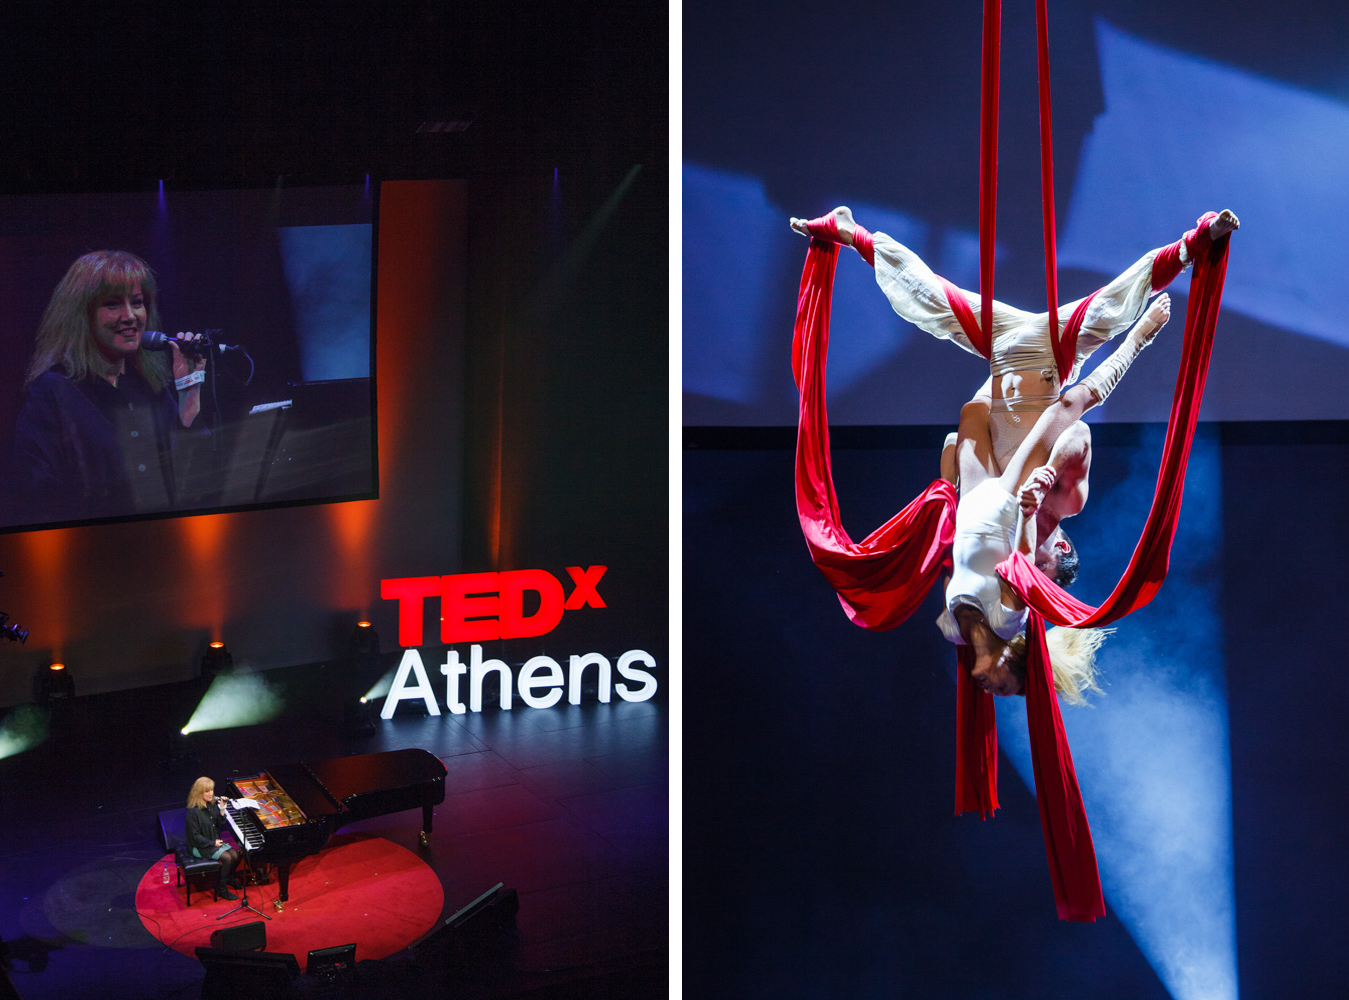 tedx-athens-2013-uncharted-waters_11336975539_o